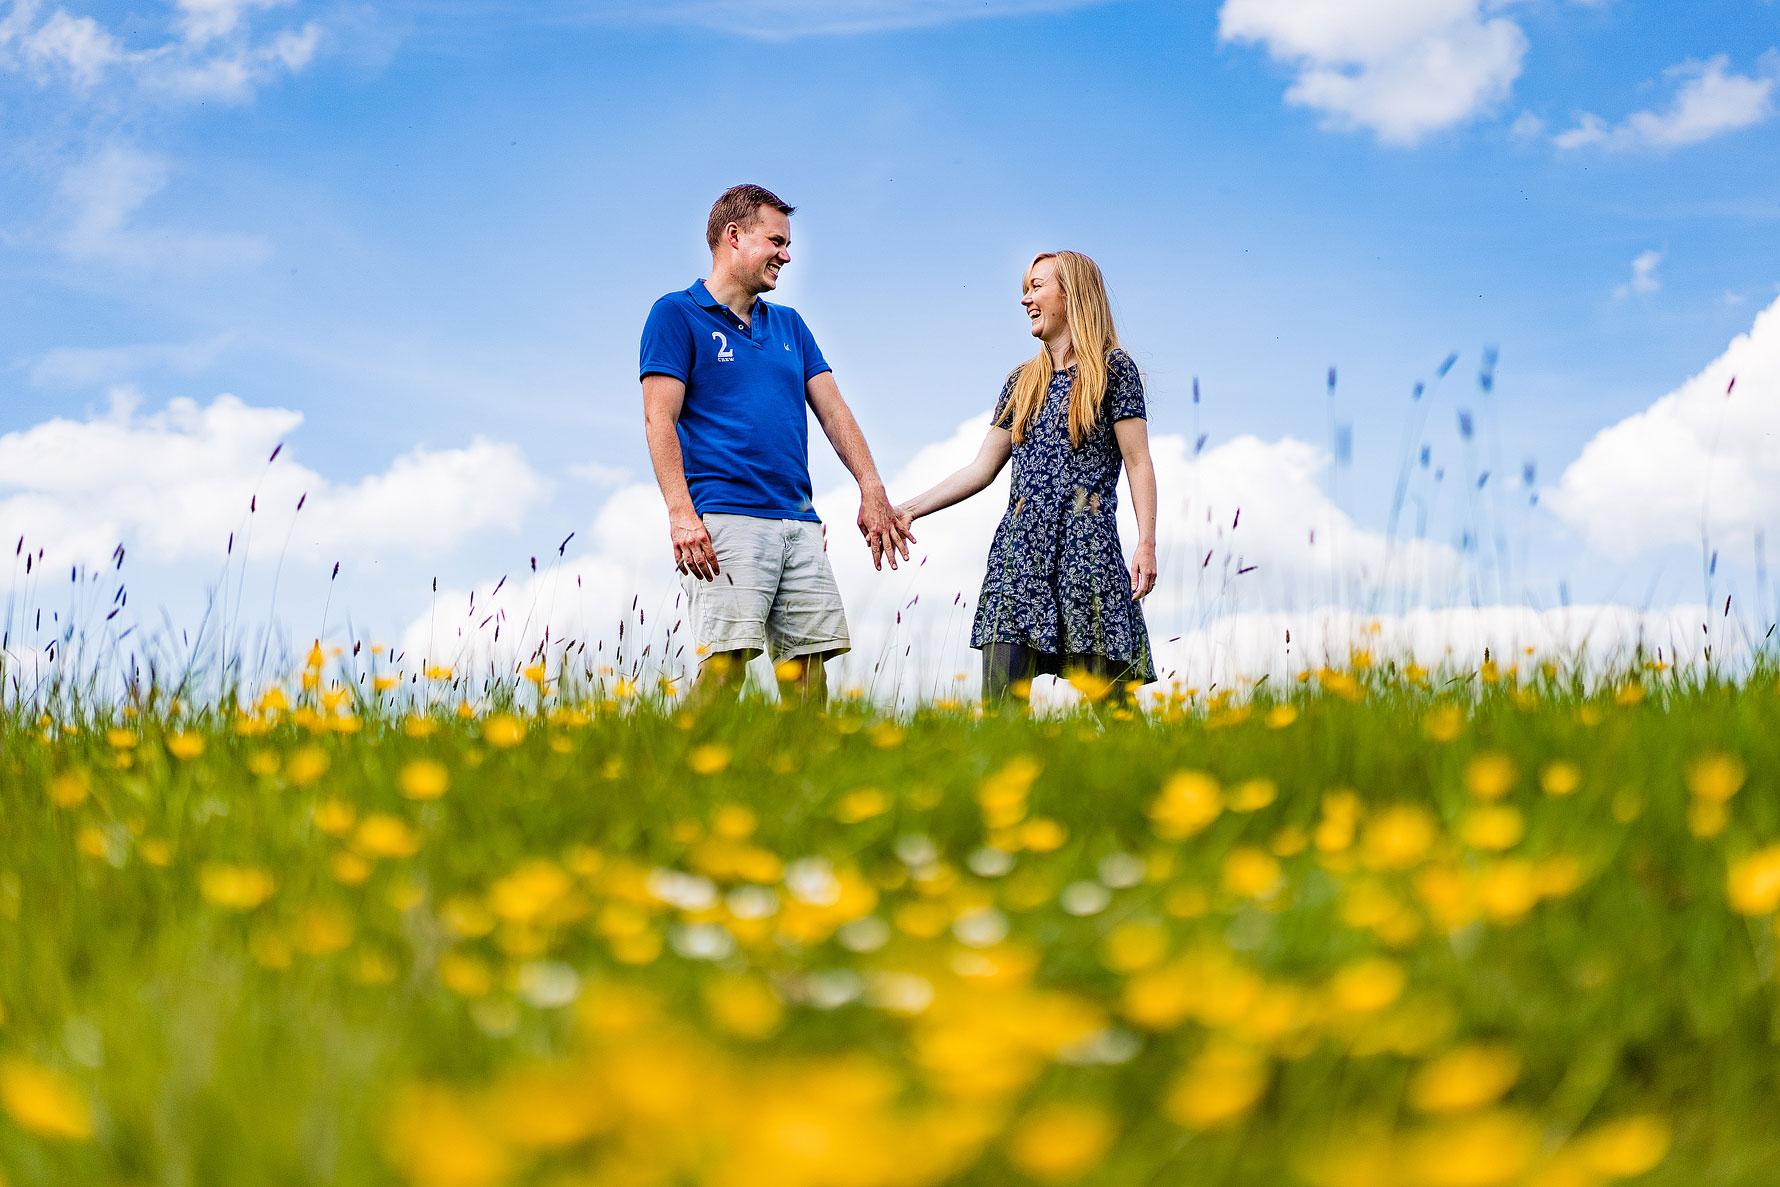 a colourful engagement shoot image of a happy couple